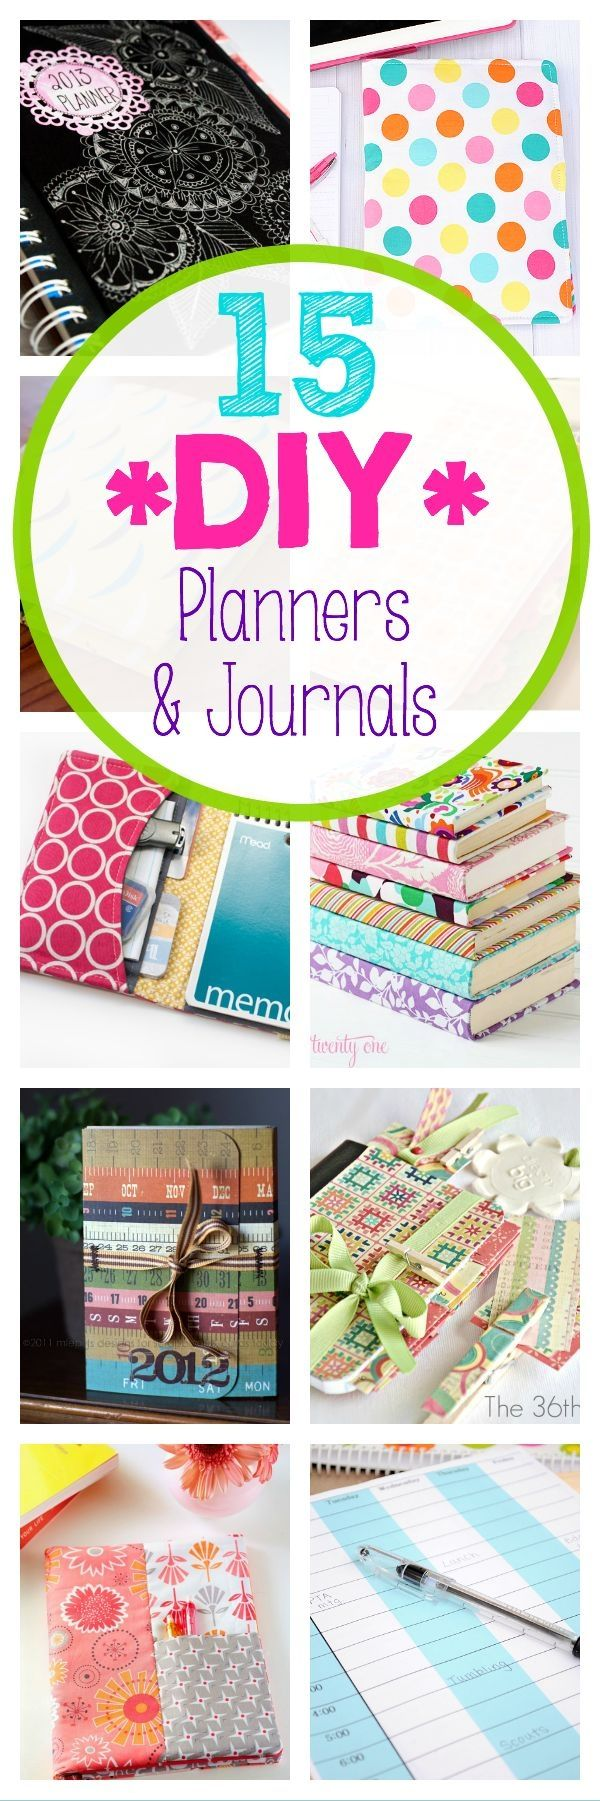 15 Planners & Journals to Make or Print at Home | #Home #Journals #Make #Planners #Print